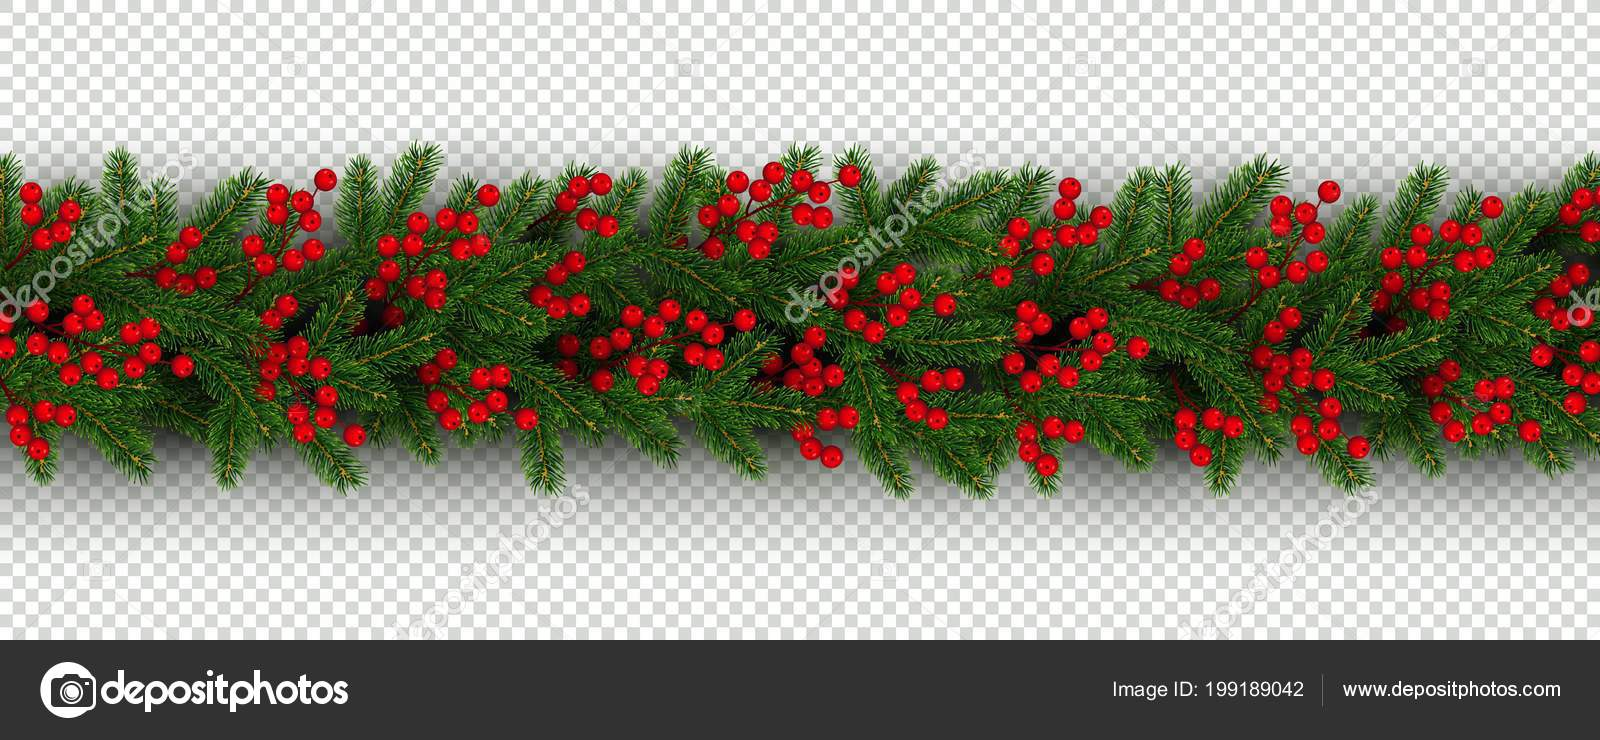 christmas and new year border of realistic branches of christmas tree and holly berries element for festive design isolated on transparent background vector